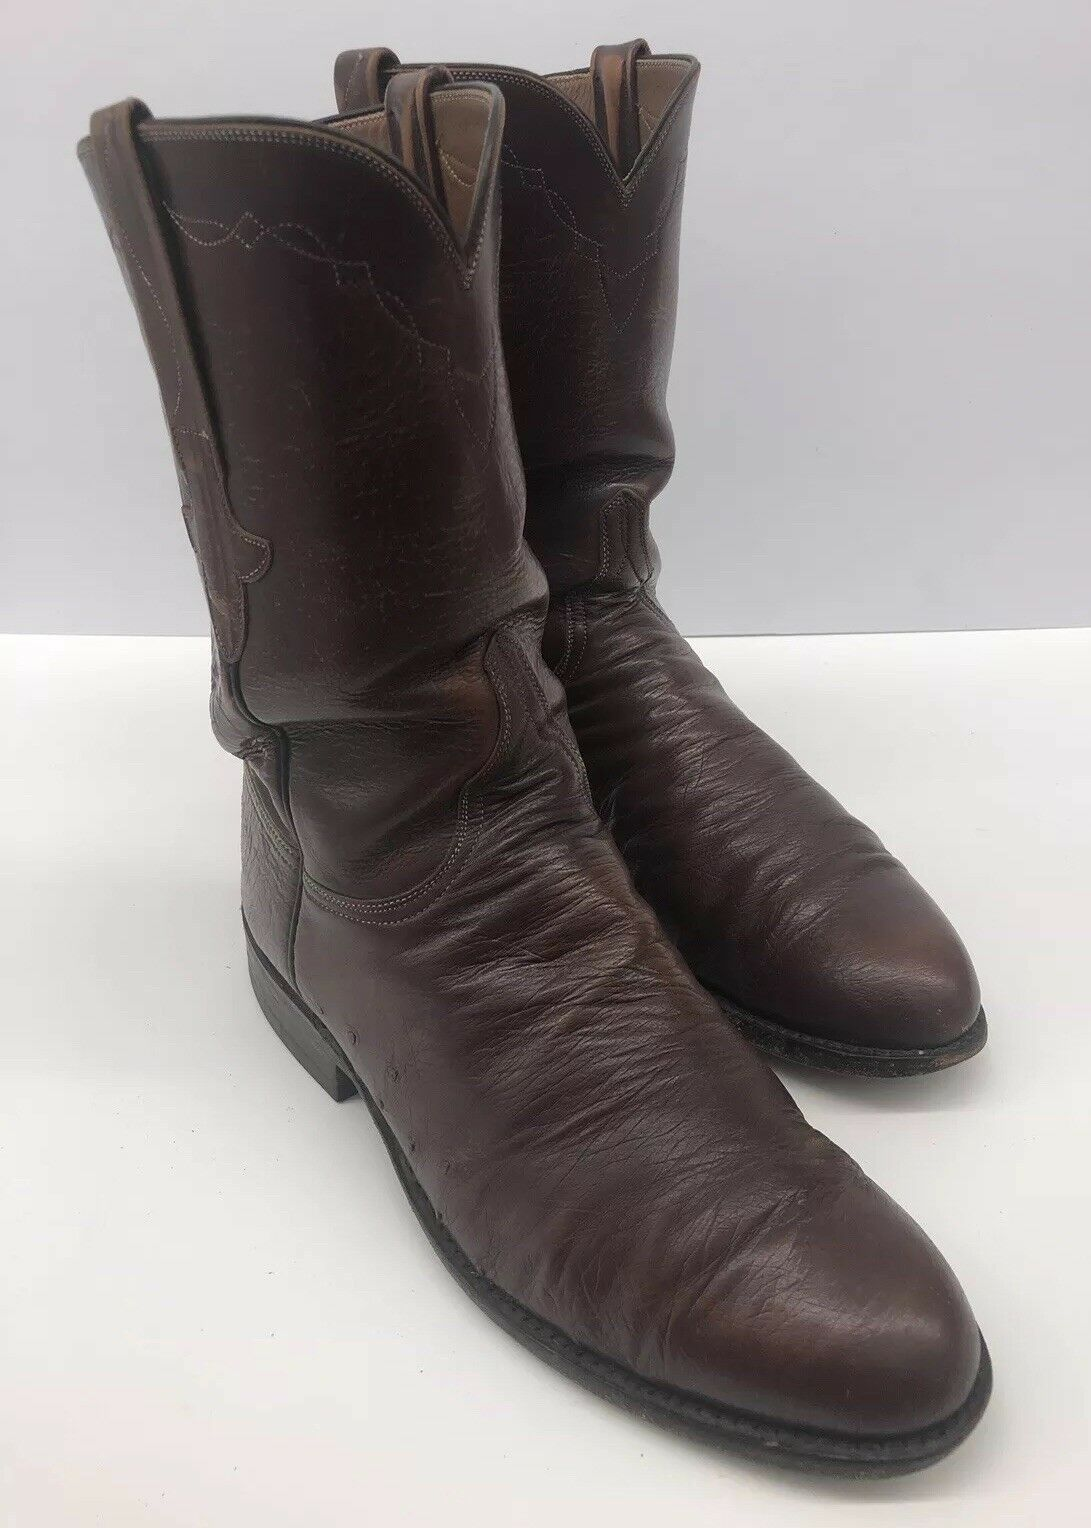 Lucchese Brown Leather Cowboy boots USA Smooth Ostrich Quill Mens Size 8.5 D